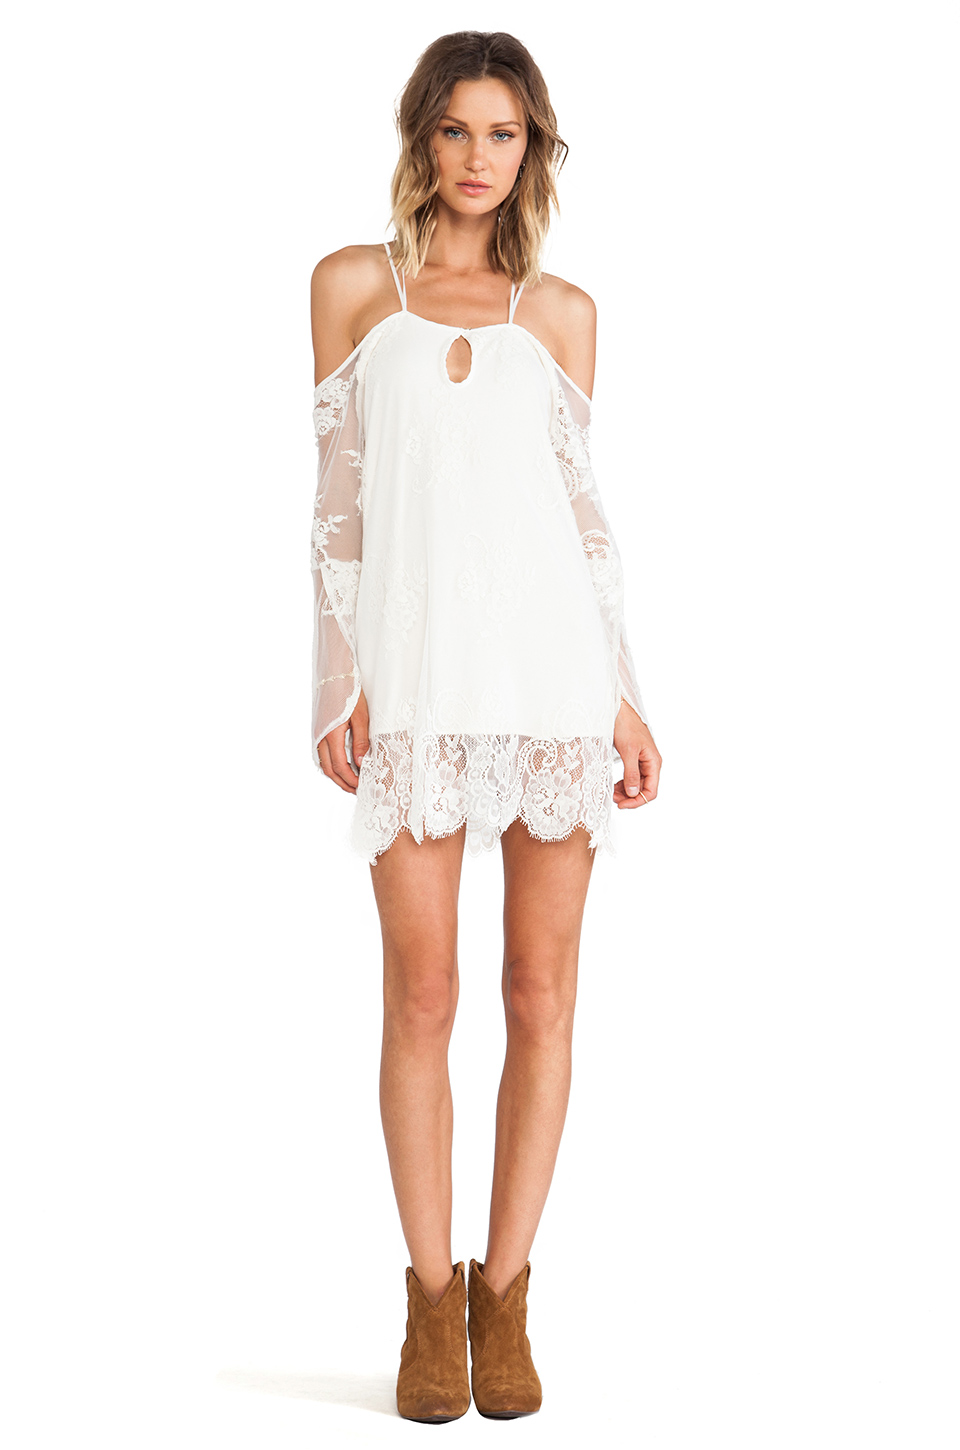 White Spaghetti Strap Off The Shoulder Lace Dress - Sheinside.com